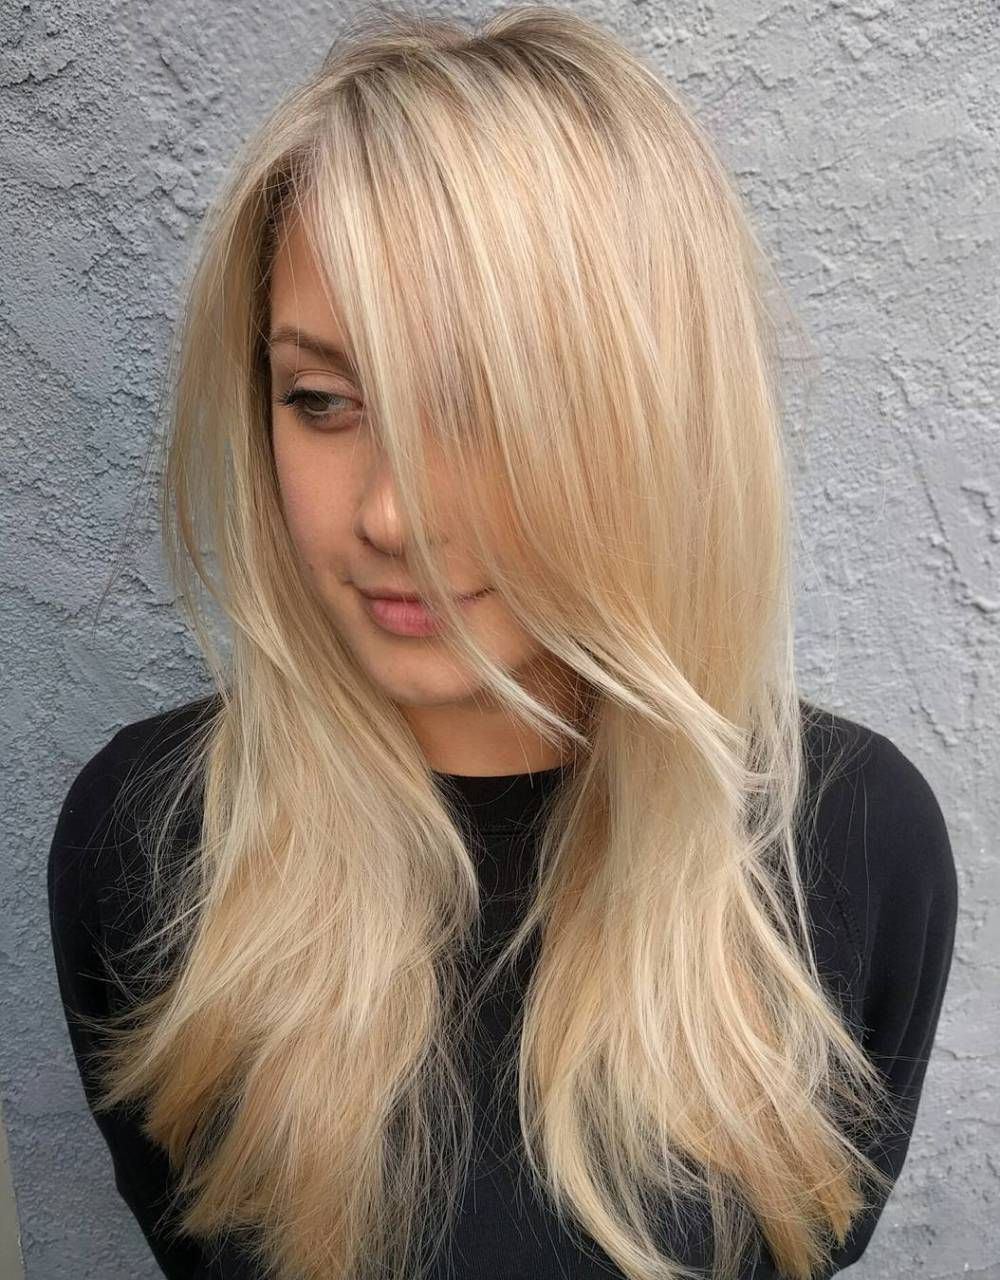 40 Long Hairstyles And Haircuts For Fine Hair Long Thin Hair Long Fine Hair Haircuts For Long Hair